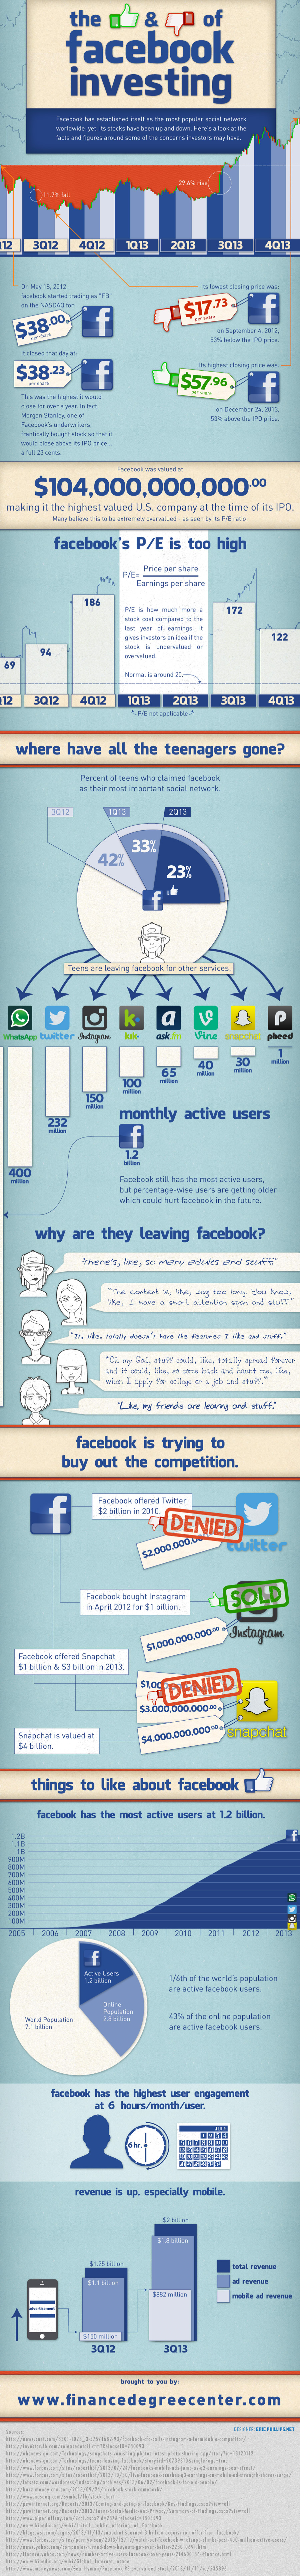 Facebook investing infographic